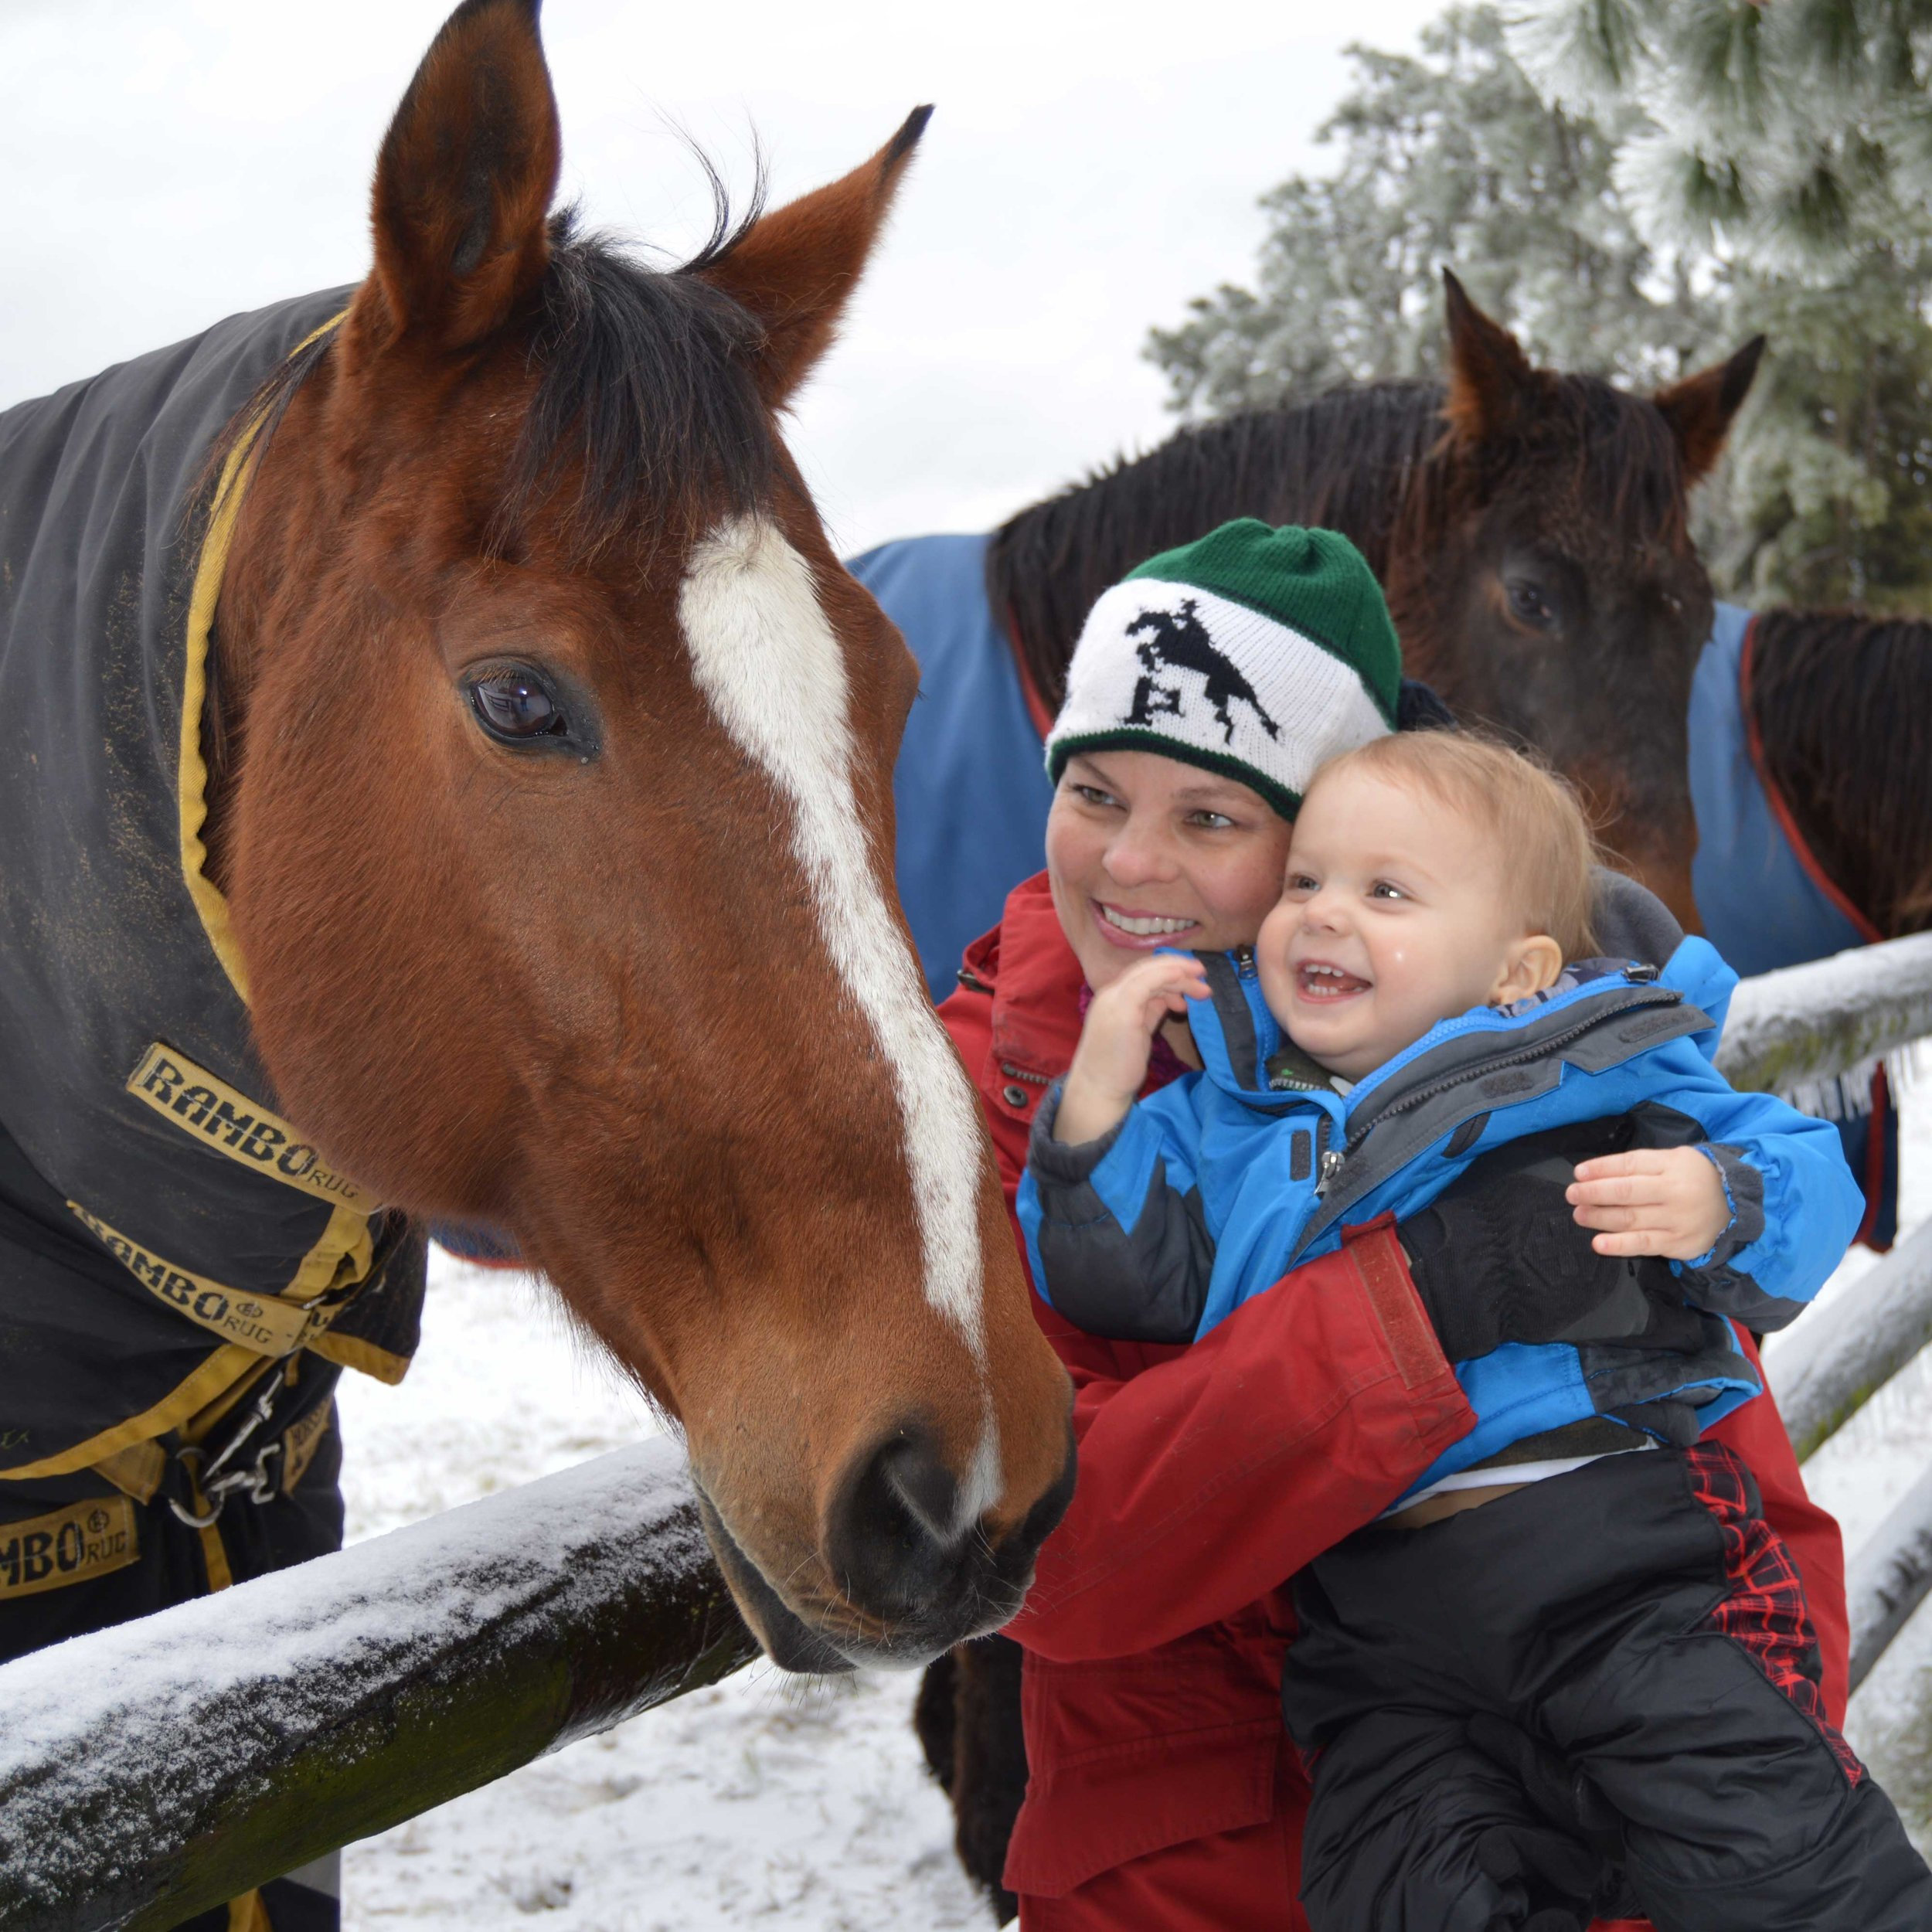 Fay and Benjamin visiting our horse, Tango, on a snow day